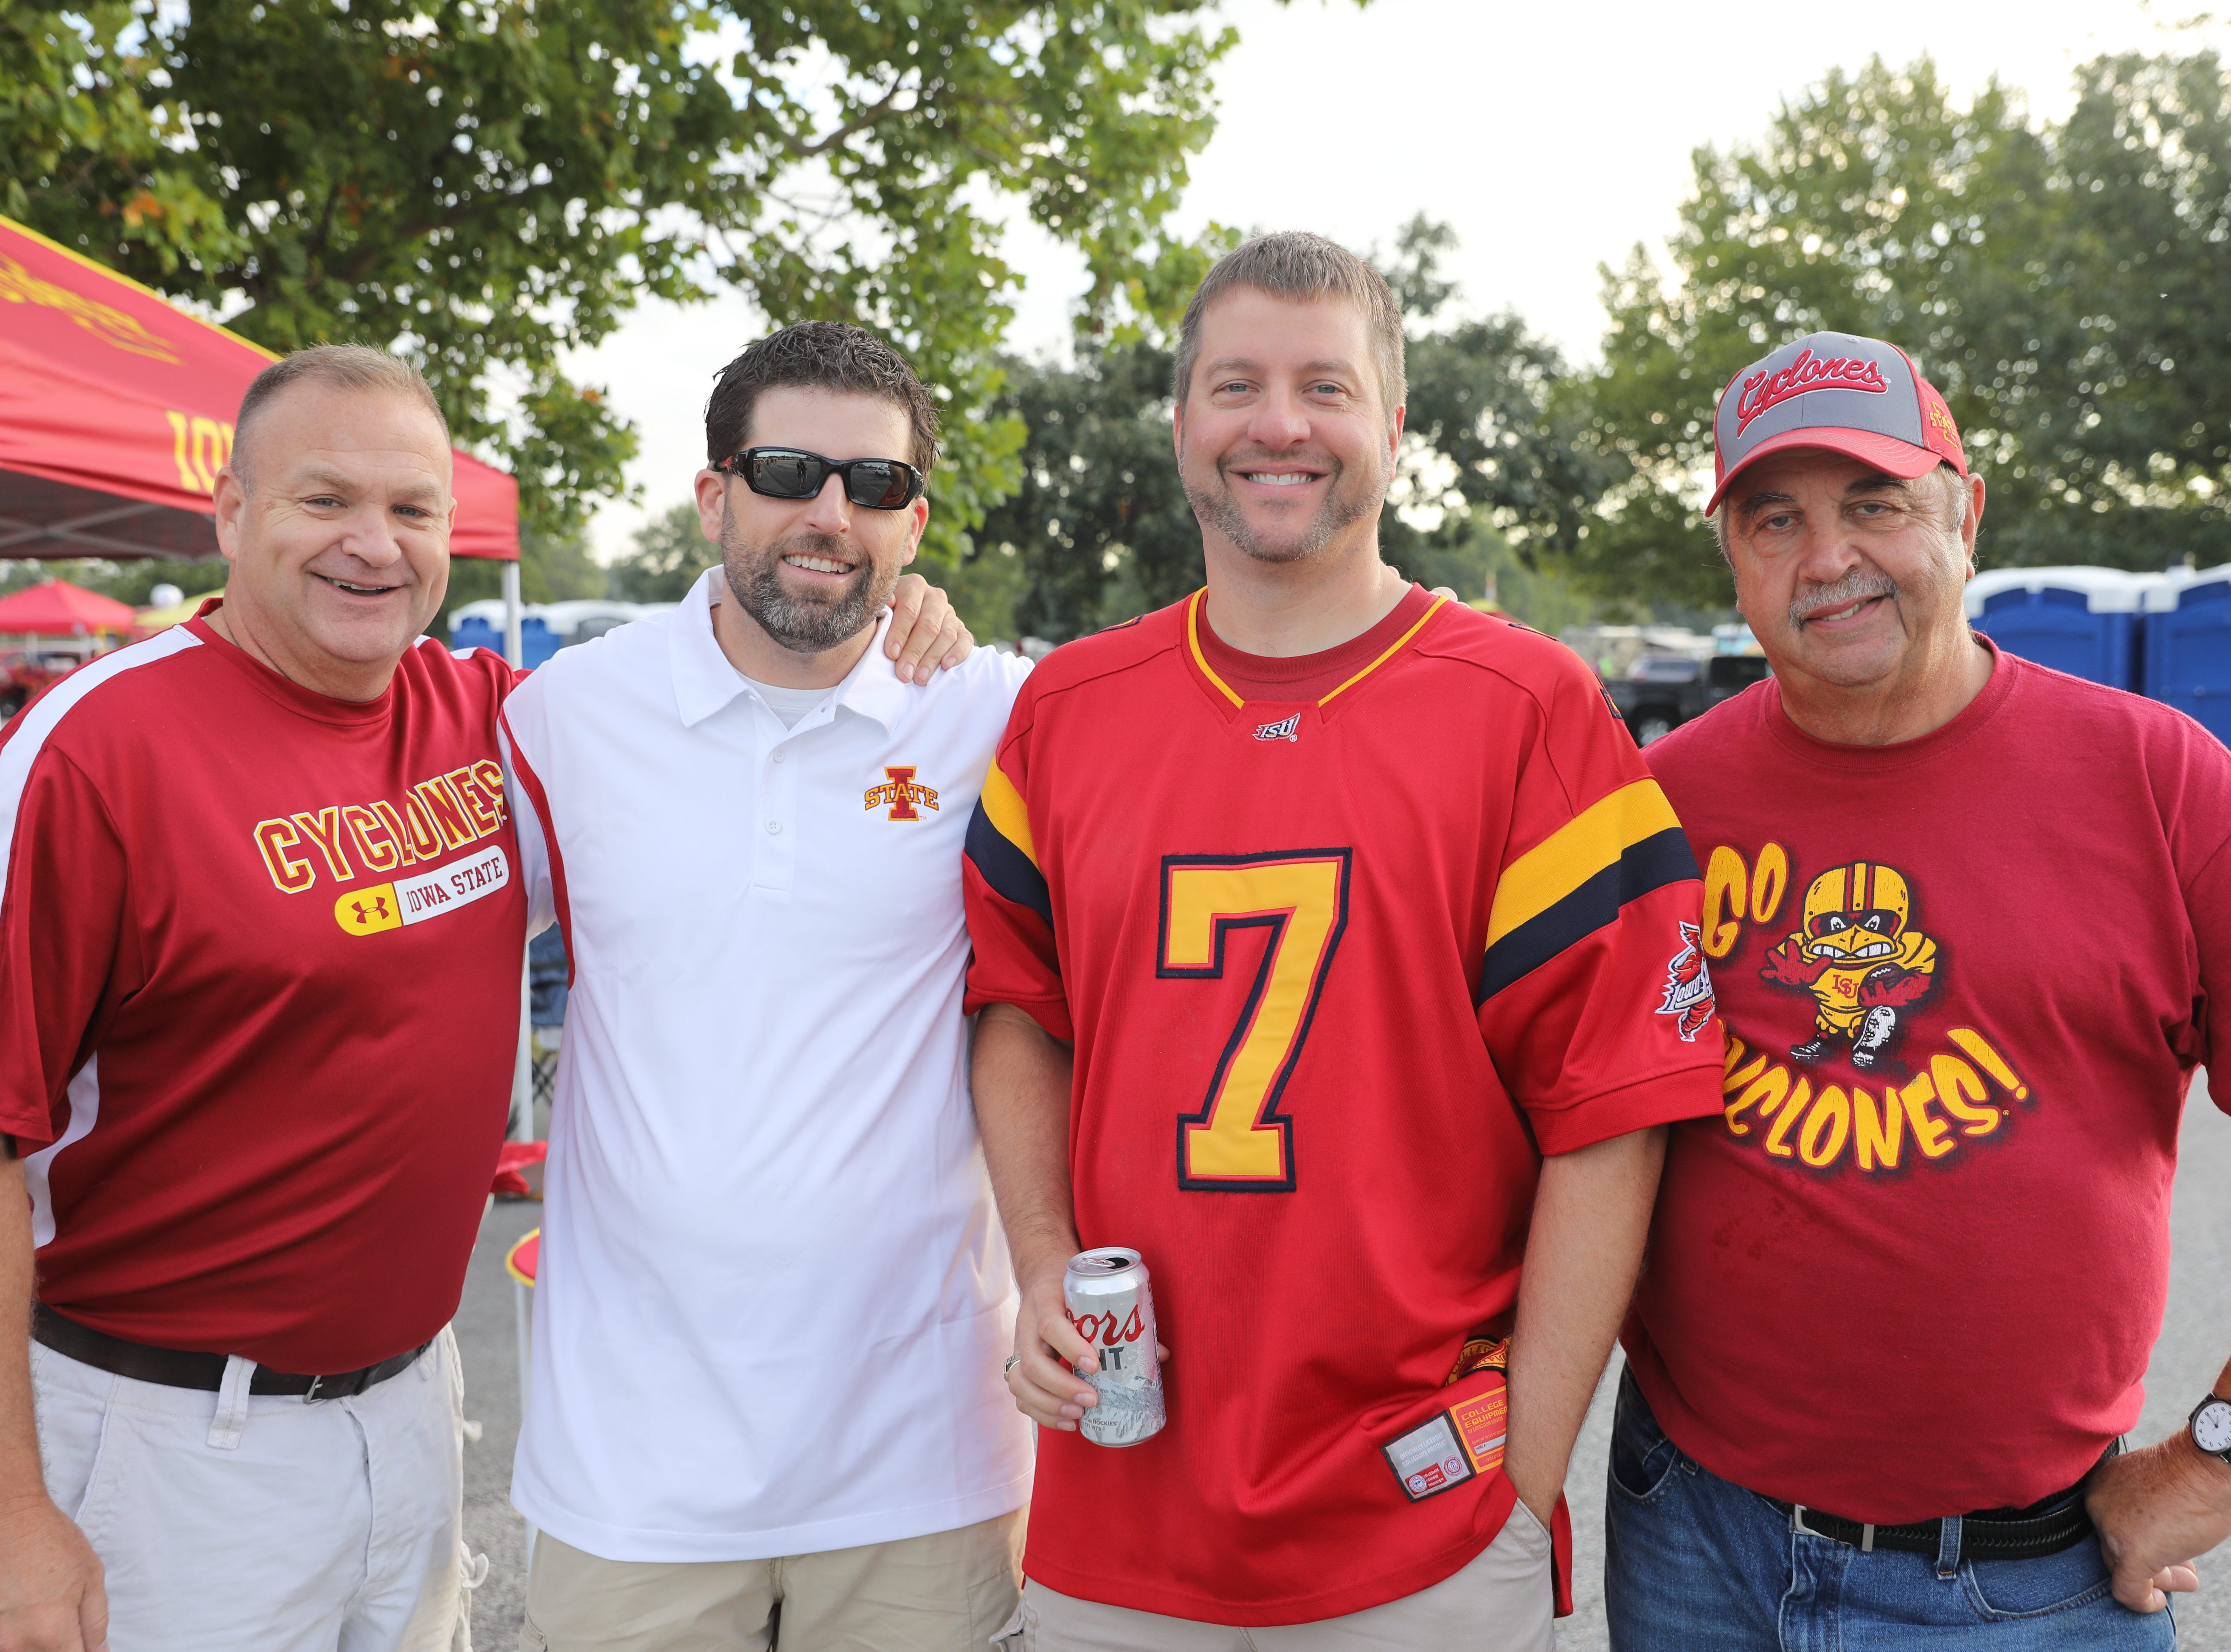 Steve Schuster (from left), Cory Vaudt, James Woerdeman, all of Ankeny, and Bernie Woerdeman of St. Paul, Iowa Saturday, Sept. 15, 2018, before the Iowa State football game against Oklahoma in Ames.